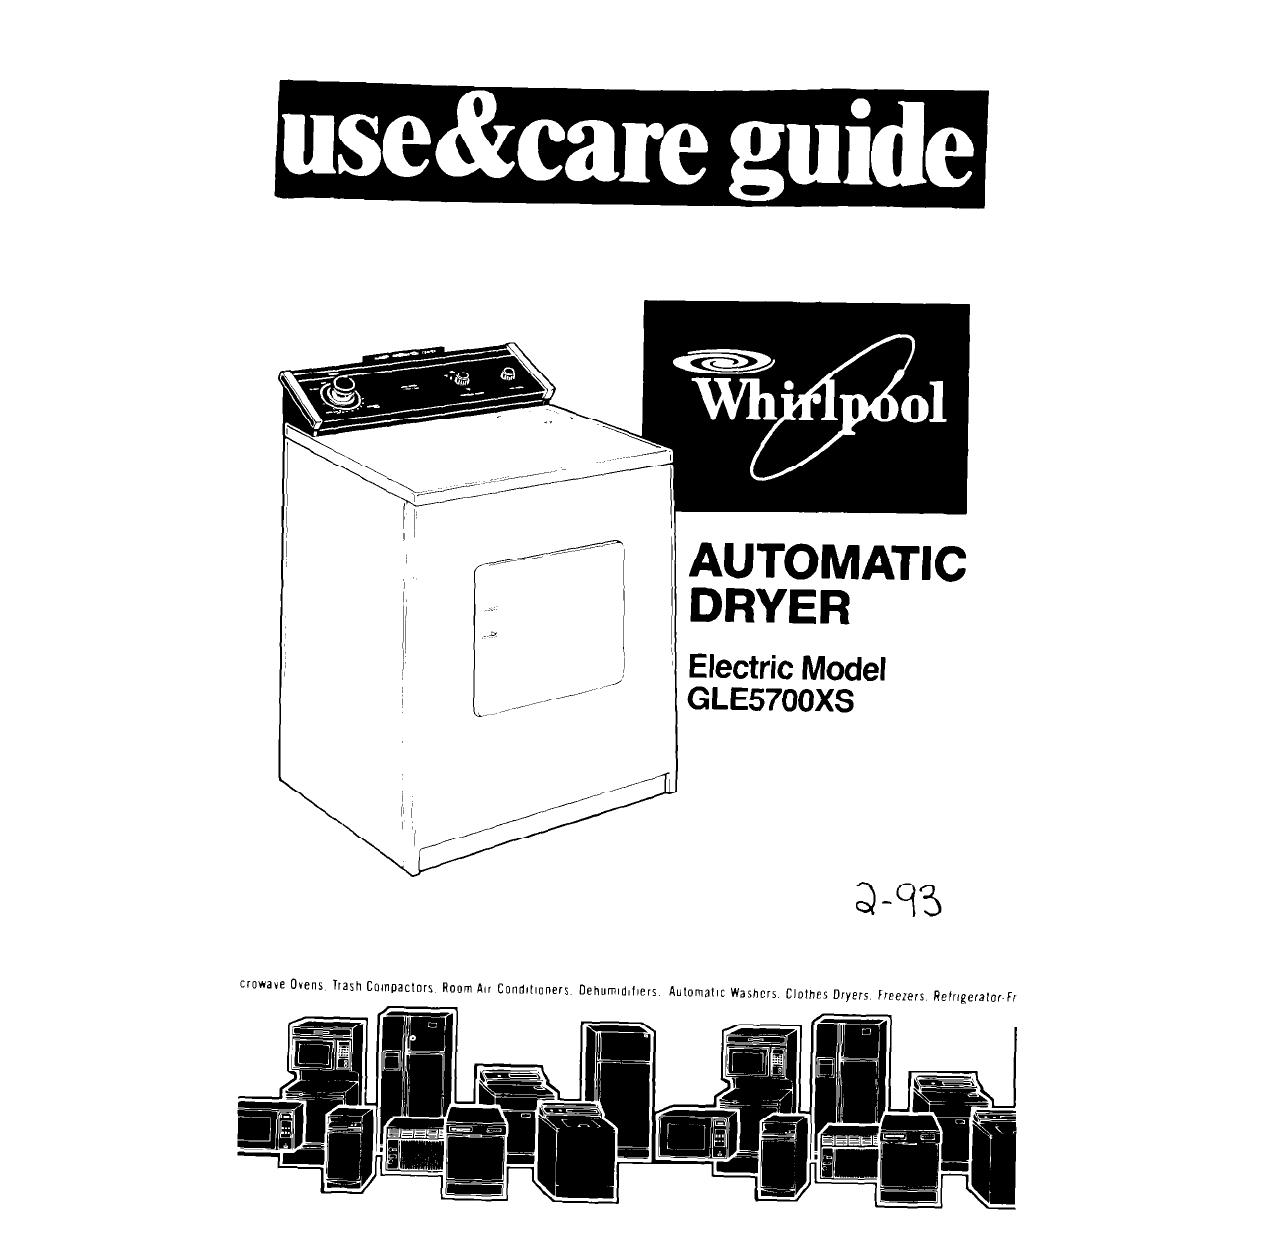 Whirlpool Clothes Dryer GLE5700XS User Guide